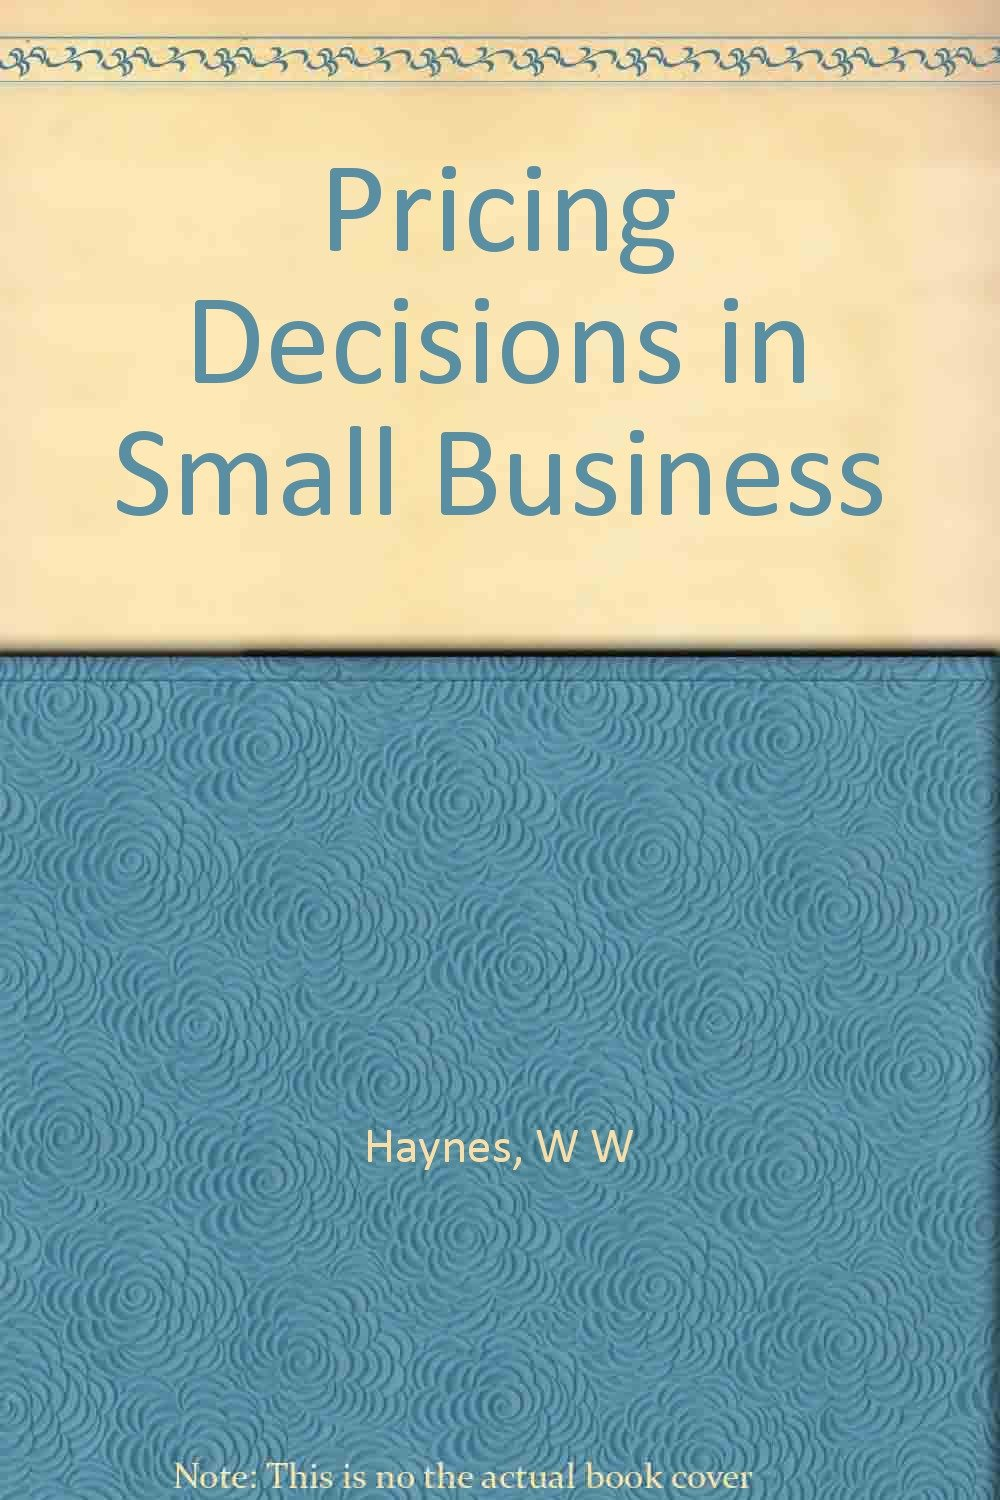 pricing-decisions-in-small-business-small-business-management-research-reports